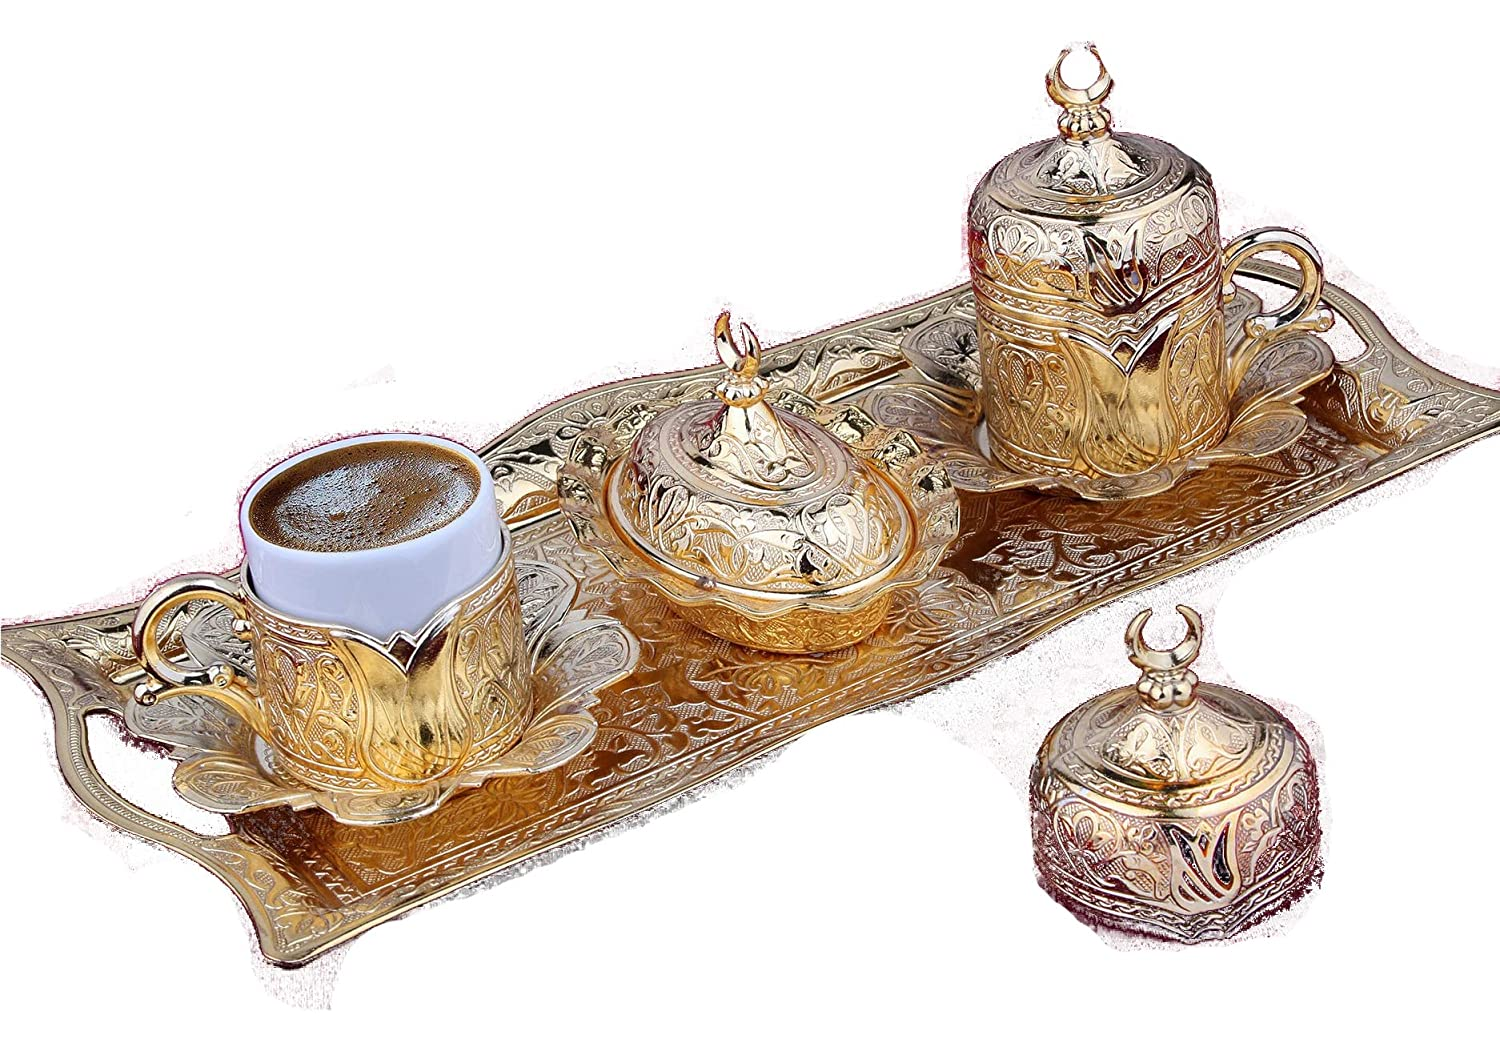 Gold Case Aged Gold plated Turkish, Arabic, Greek and Espresso Coffee Set for 2 - Made in Turkey - 11 pieced set (Aged gold) Lalezar 2li-ant-05